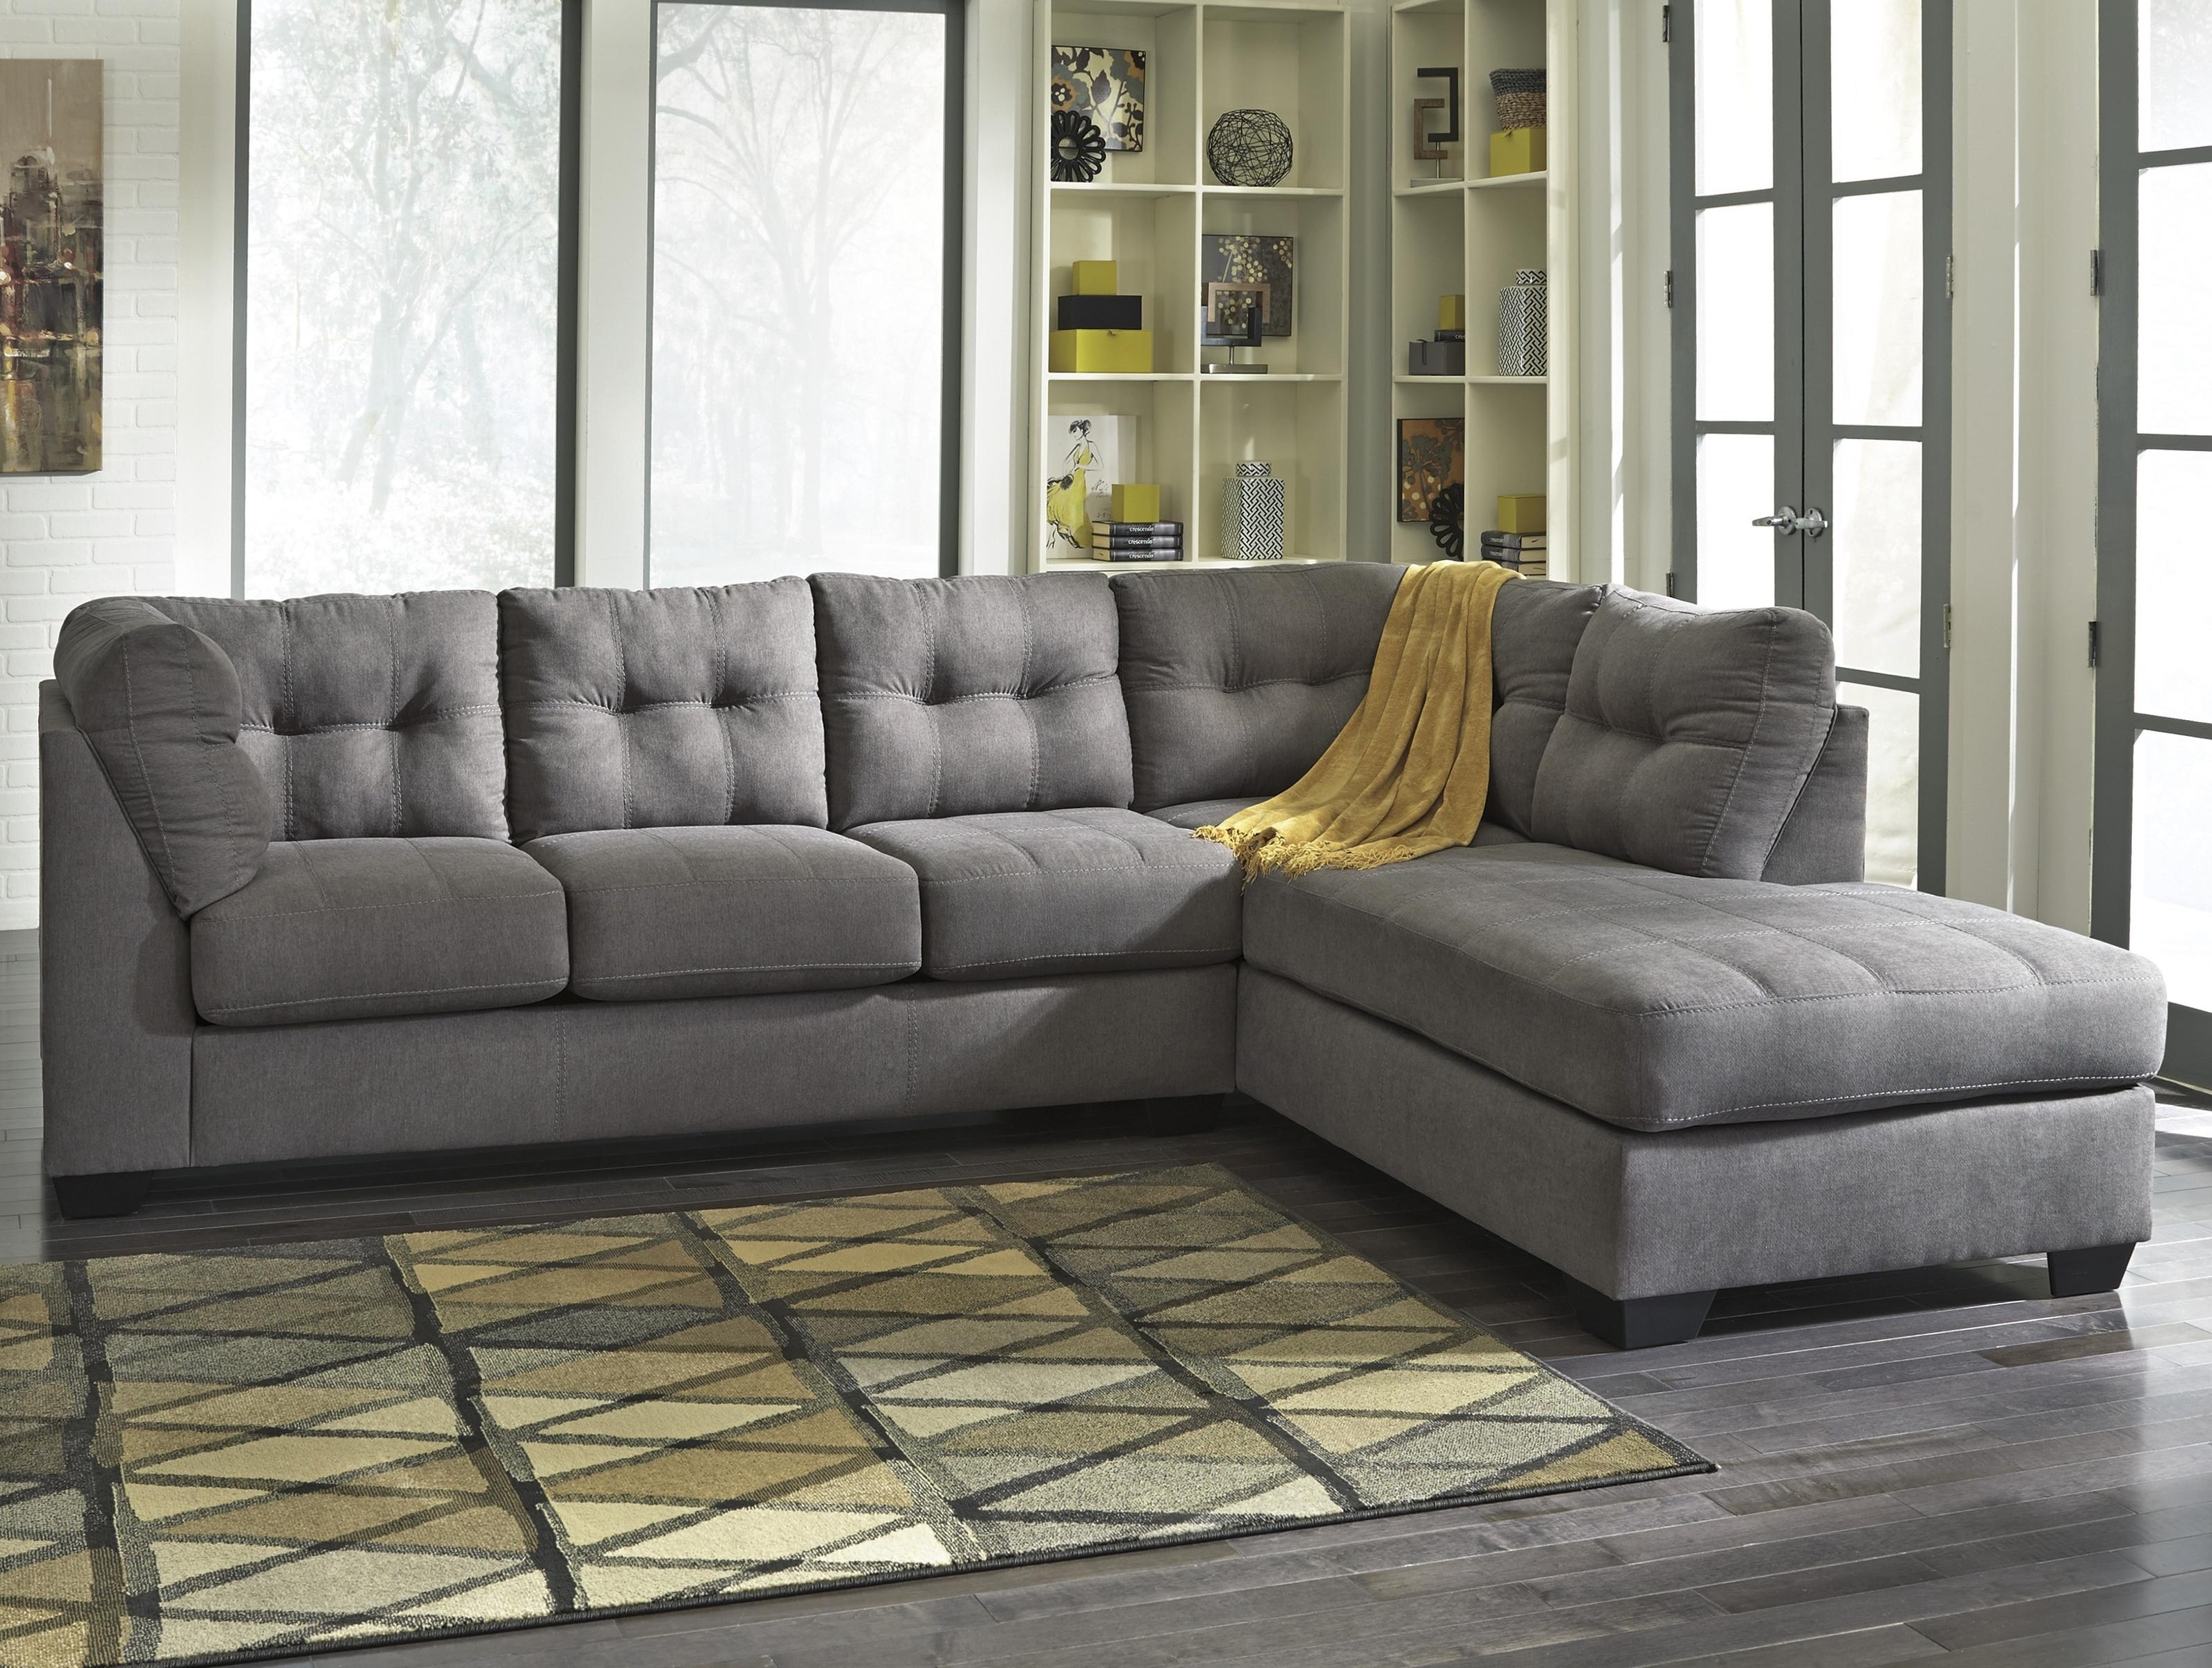 Sectional Sofa Design: Left Sectional Sofa Side Chaise Handed Regarding Best And Newest Sleek Sectional Sofas (View 14 of 20)